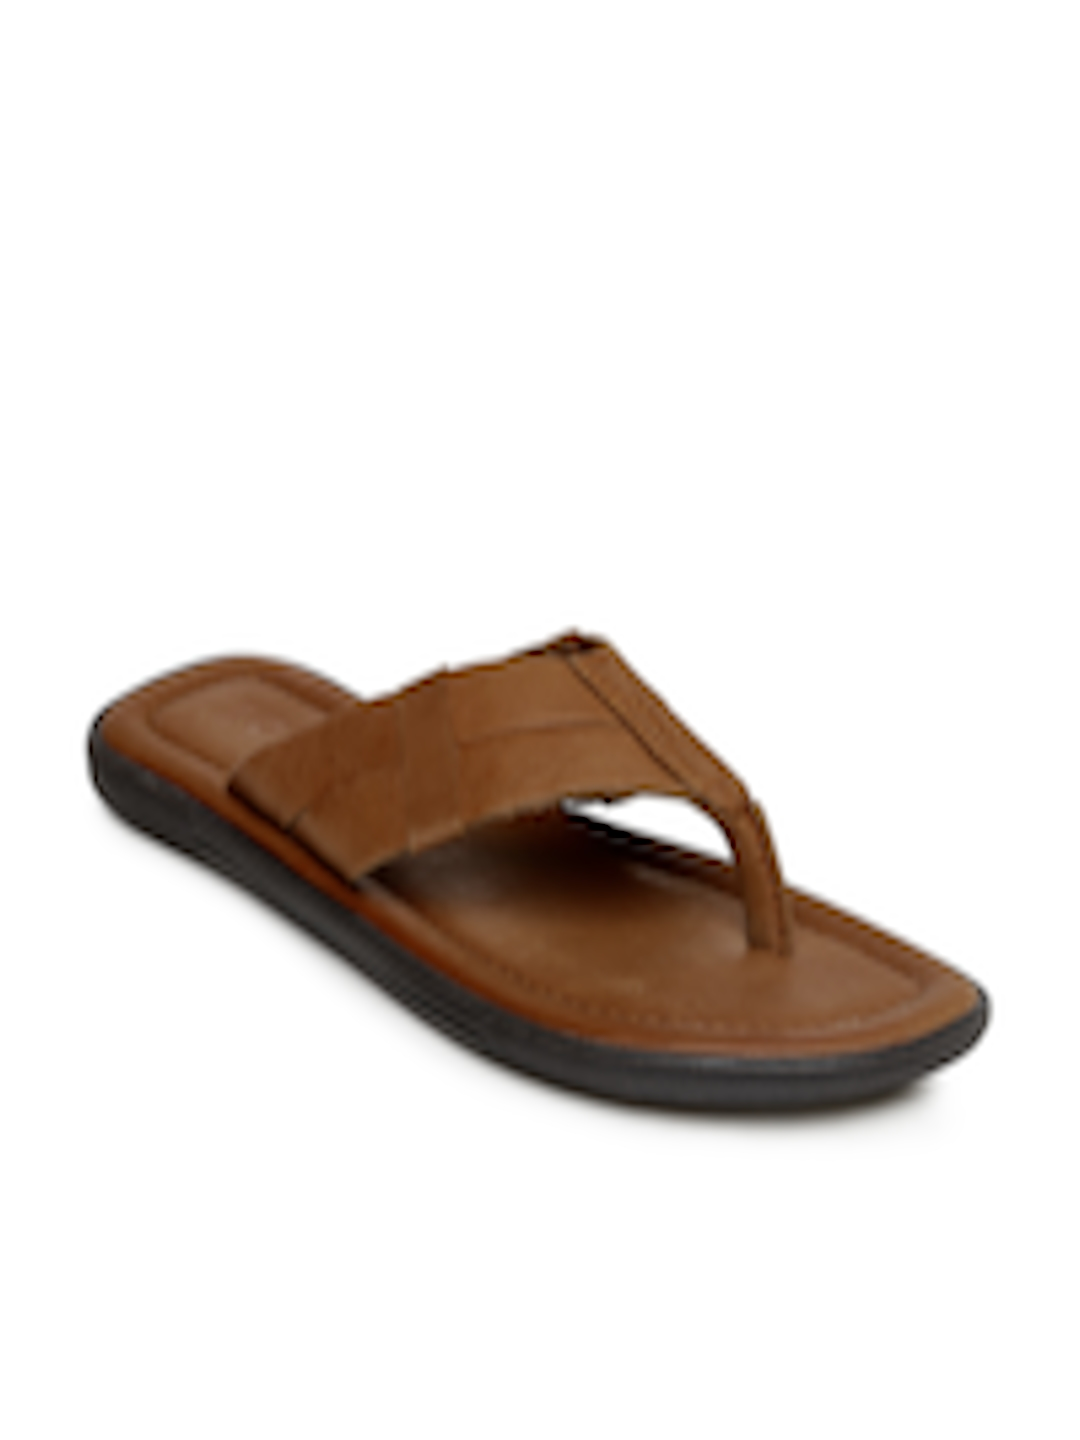 3b29bccfde63 Buy Estd. 1977 Men Brown Leather Sandals - Sandals for Men 1419471 ...